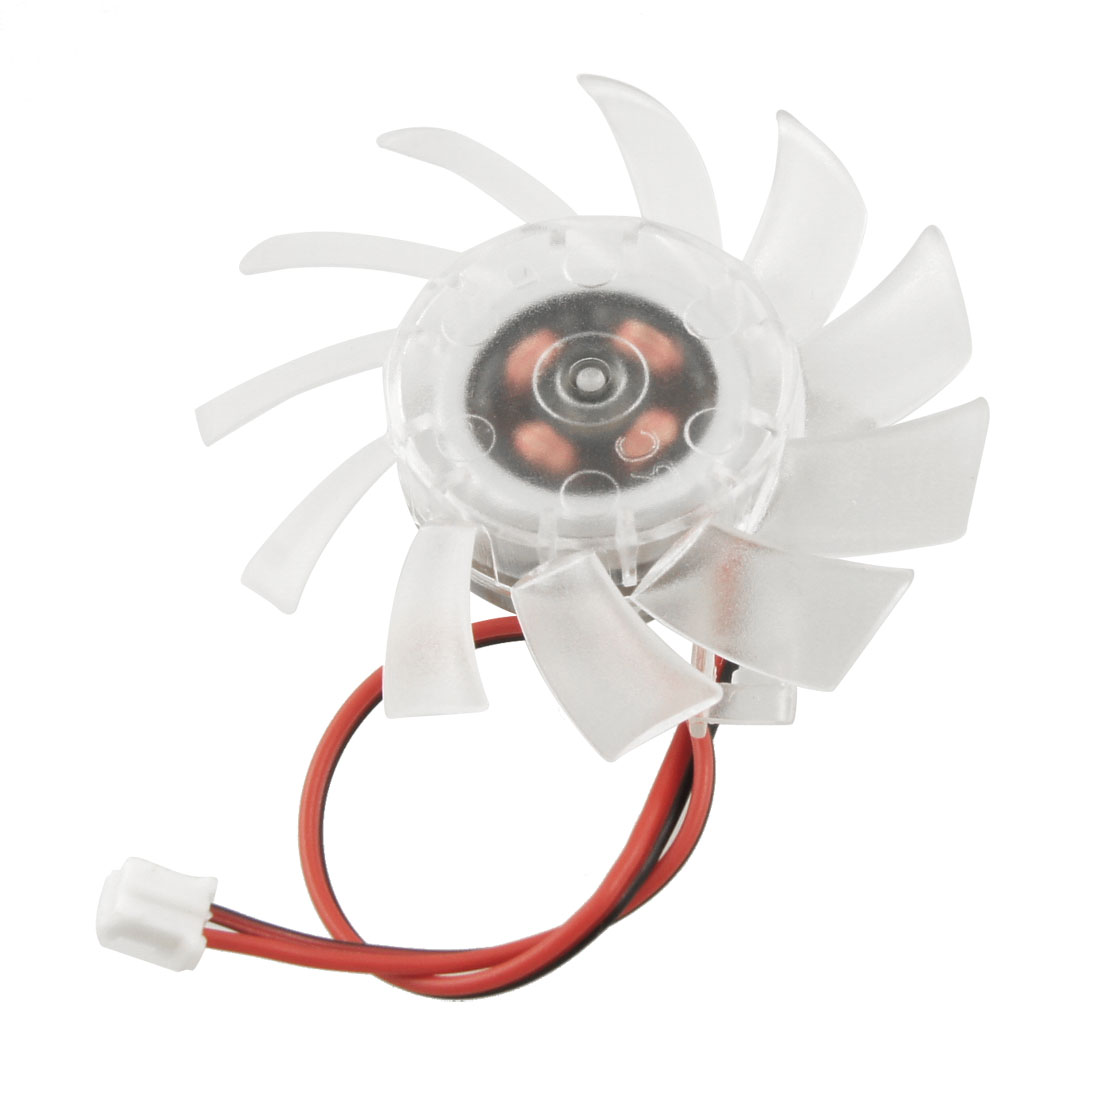 PC 2 Terminals Connector VGA Video Card Cooling Fan Clear 55mm